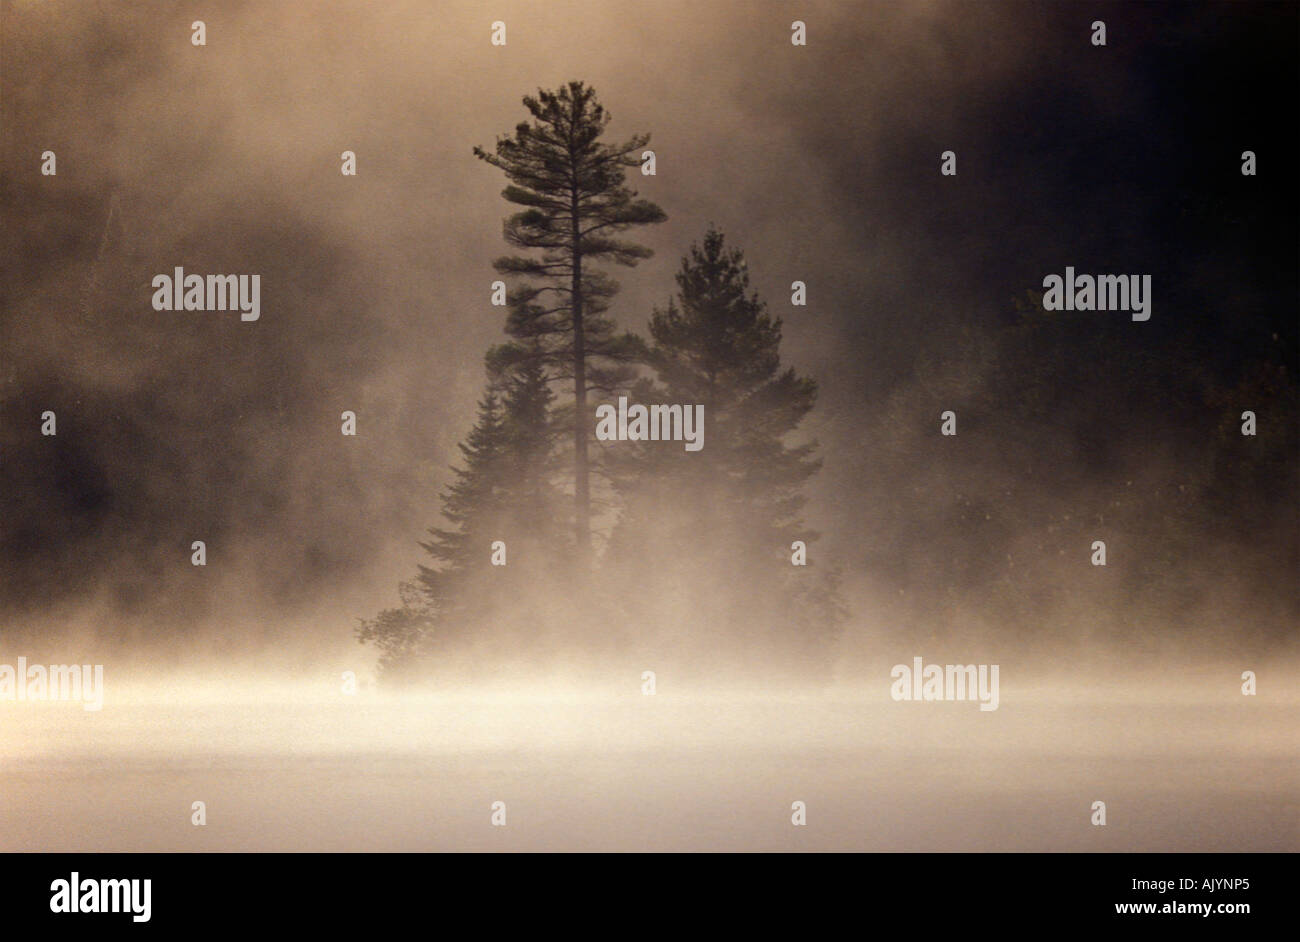 a-tree-on-a-small-island-emerges-from-a-dawn-mist-in-mont-tremblant-AJYNP5.jpg